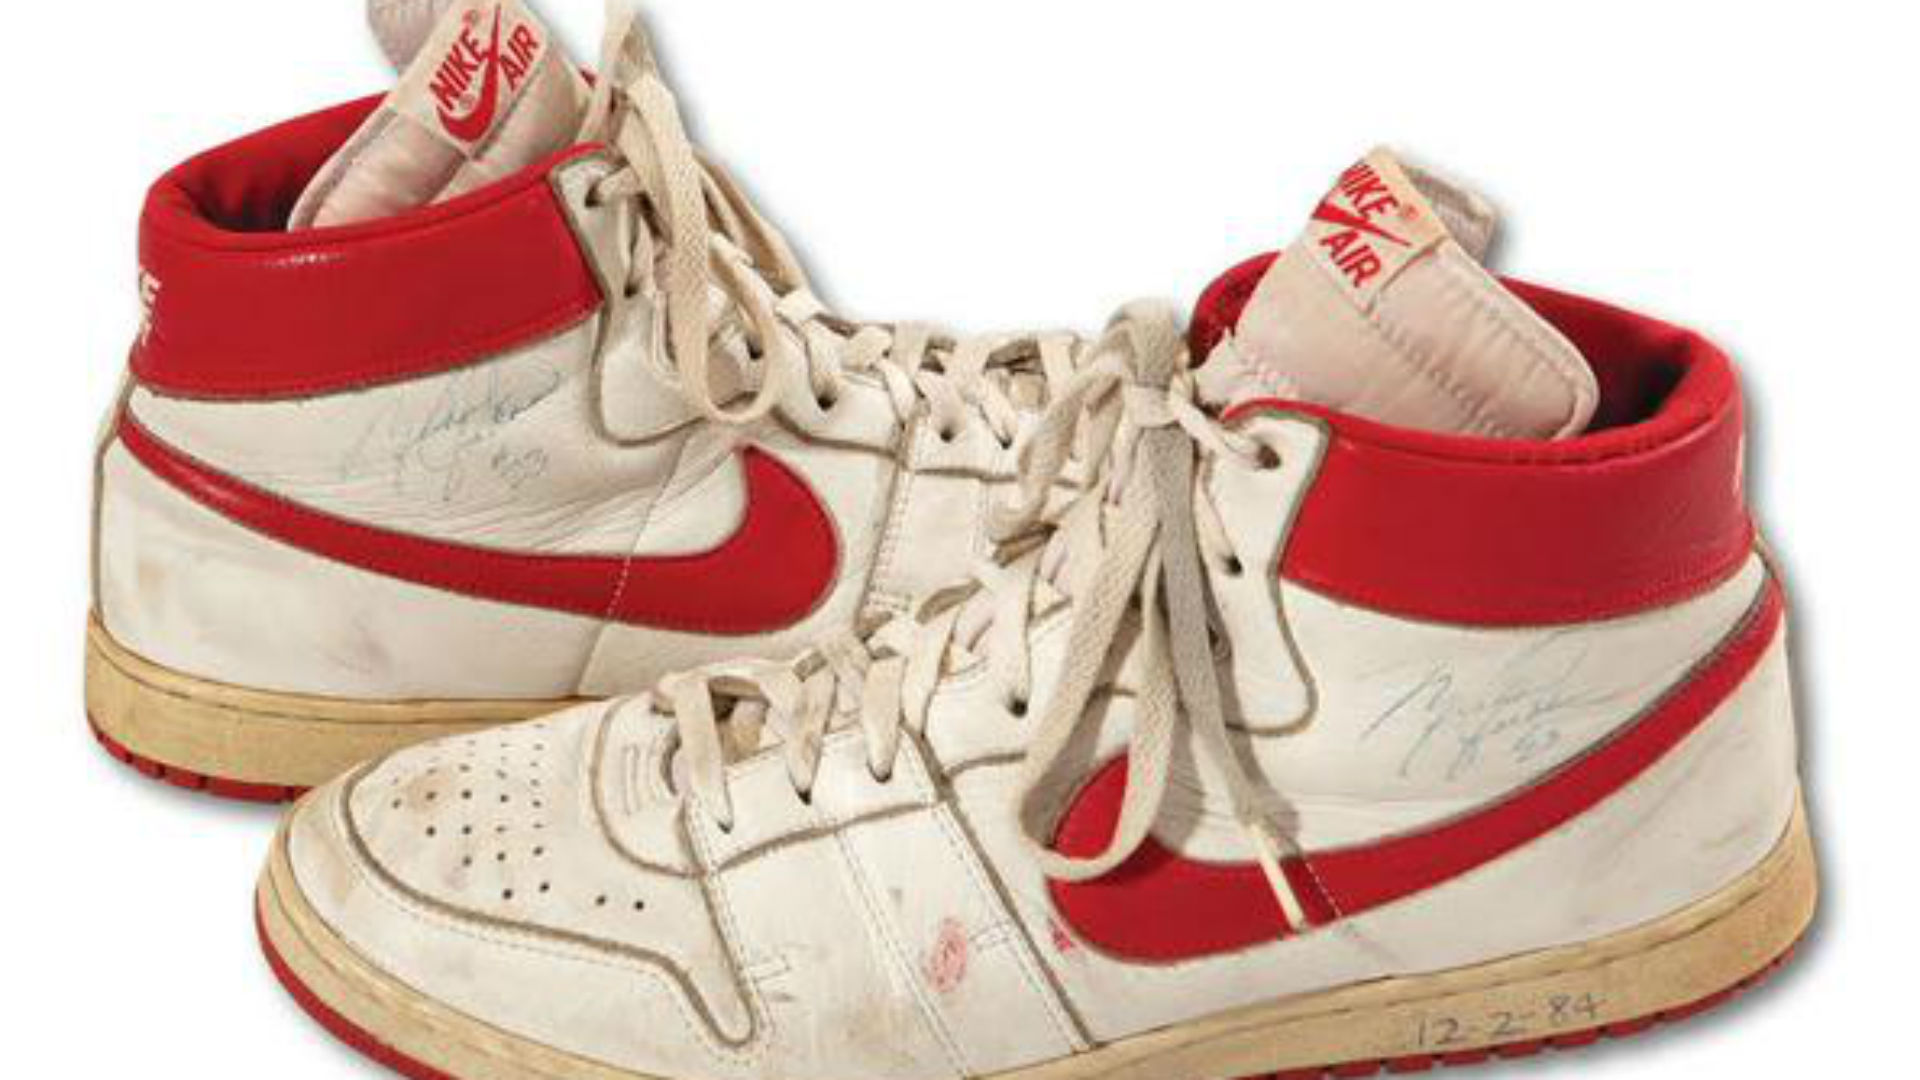 Michael Jordan's rookie season game-worn sneakers go for over $70,000